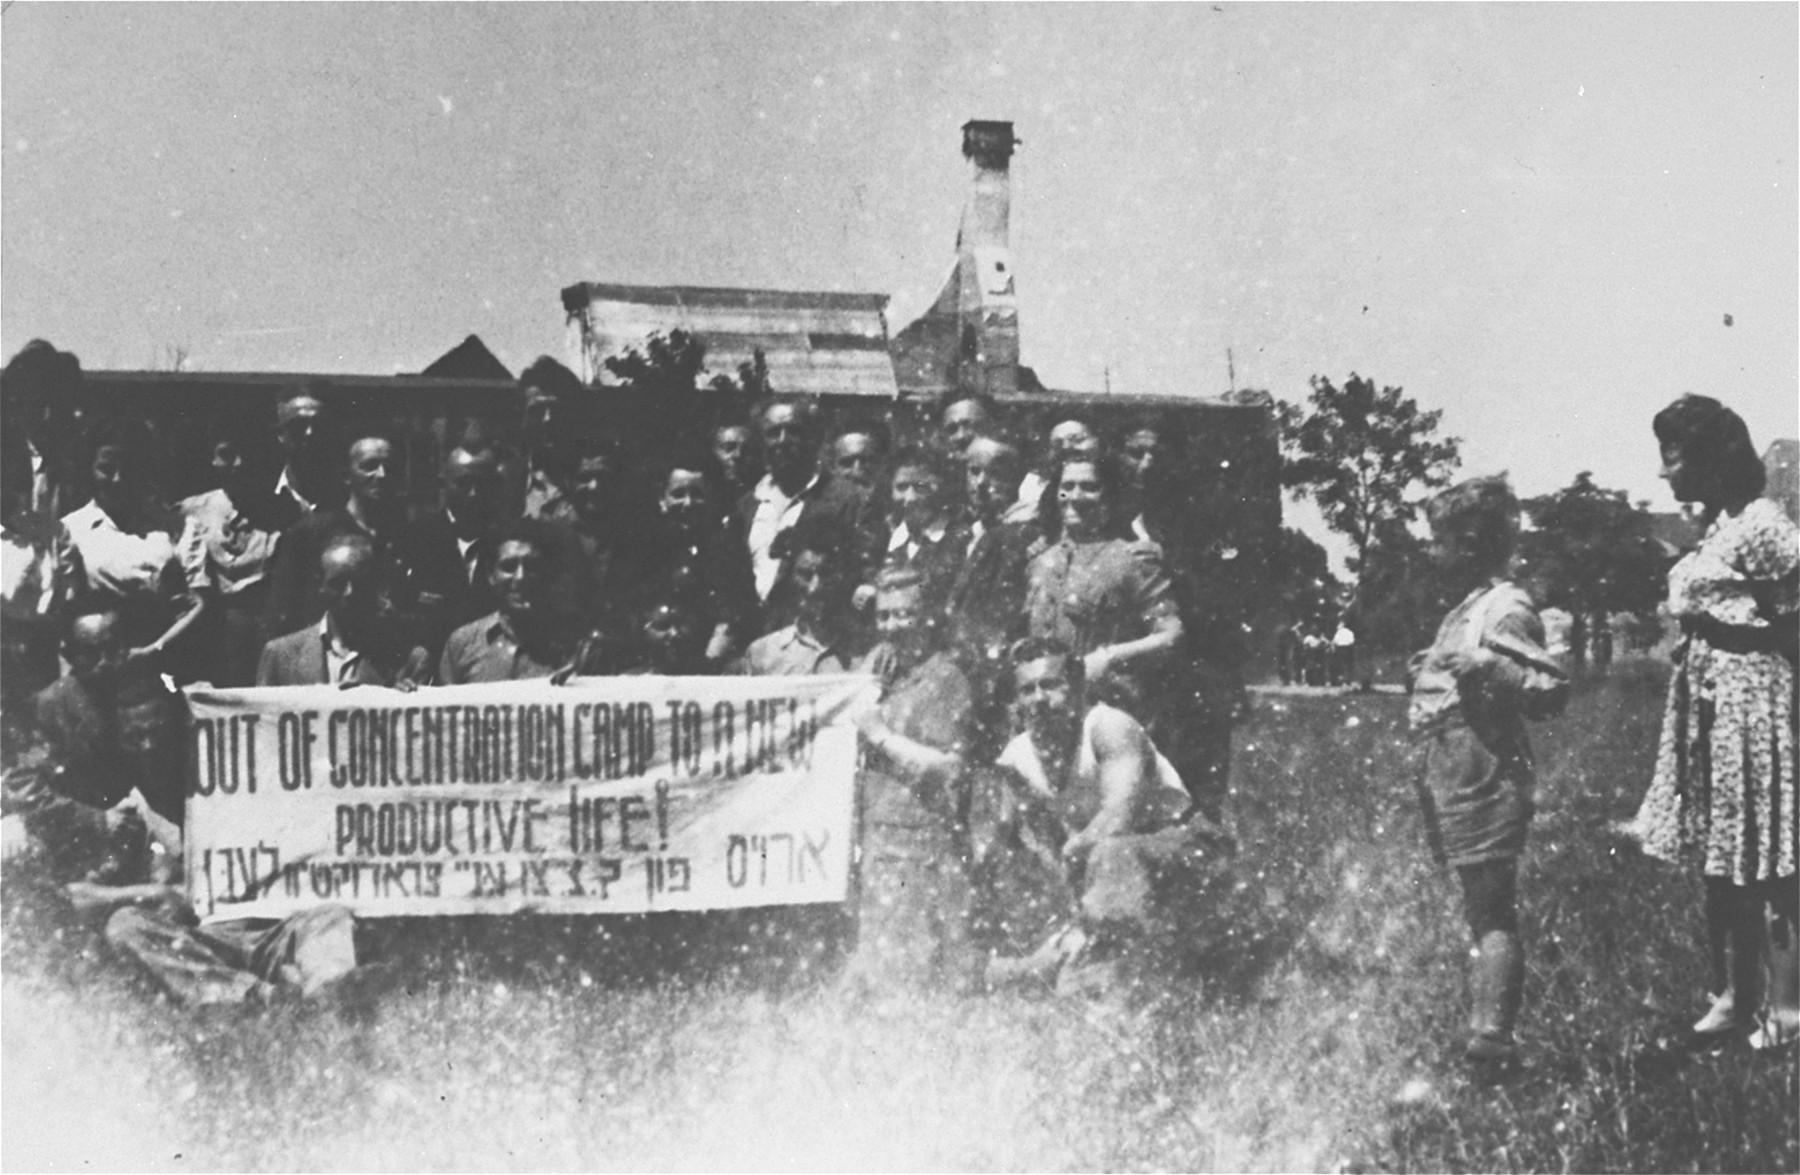 Jewish DPs in the Feldafing displaced persons camp hold a banner written in English and Yiddish, demanding that they be allowed to immigrate to Palestine.